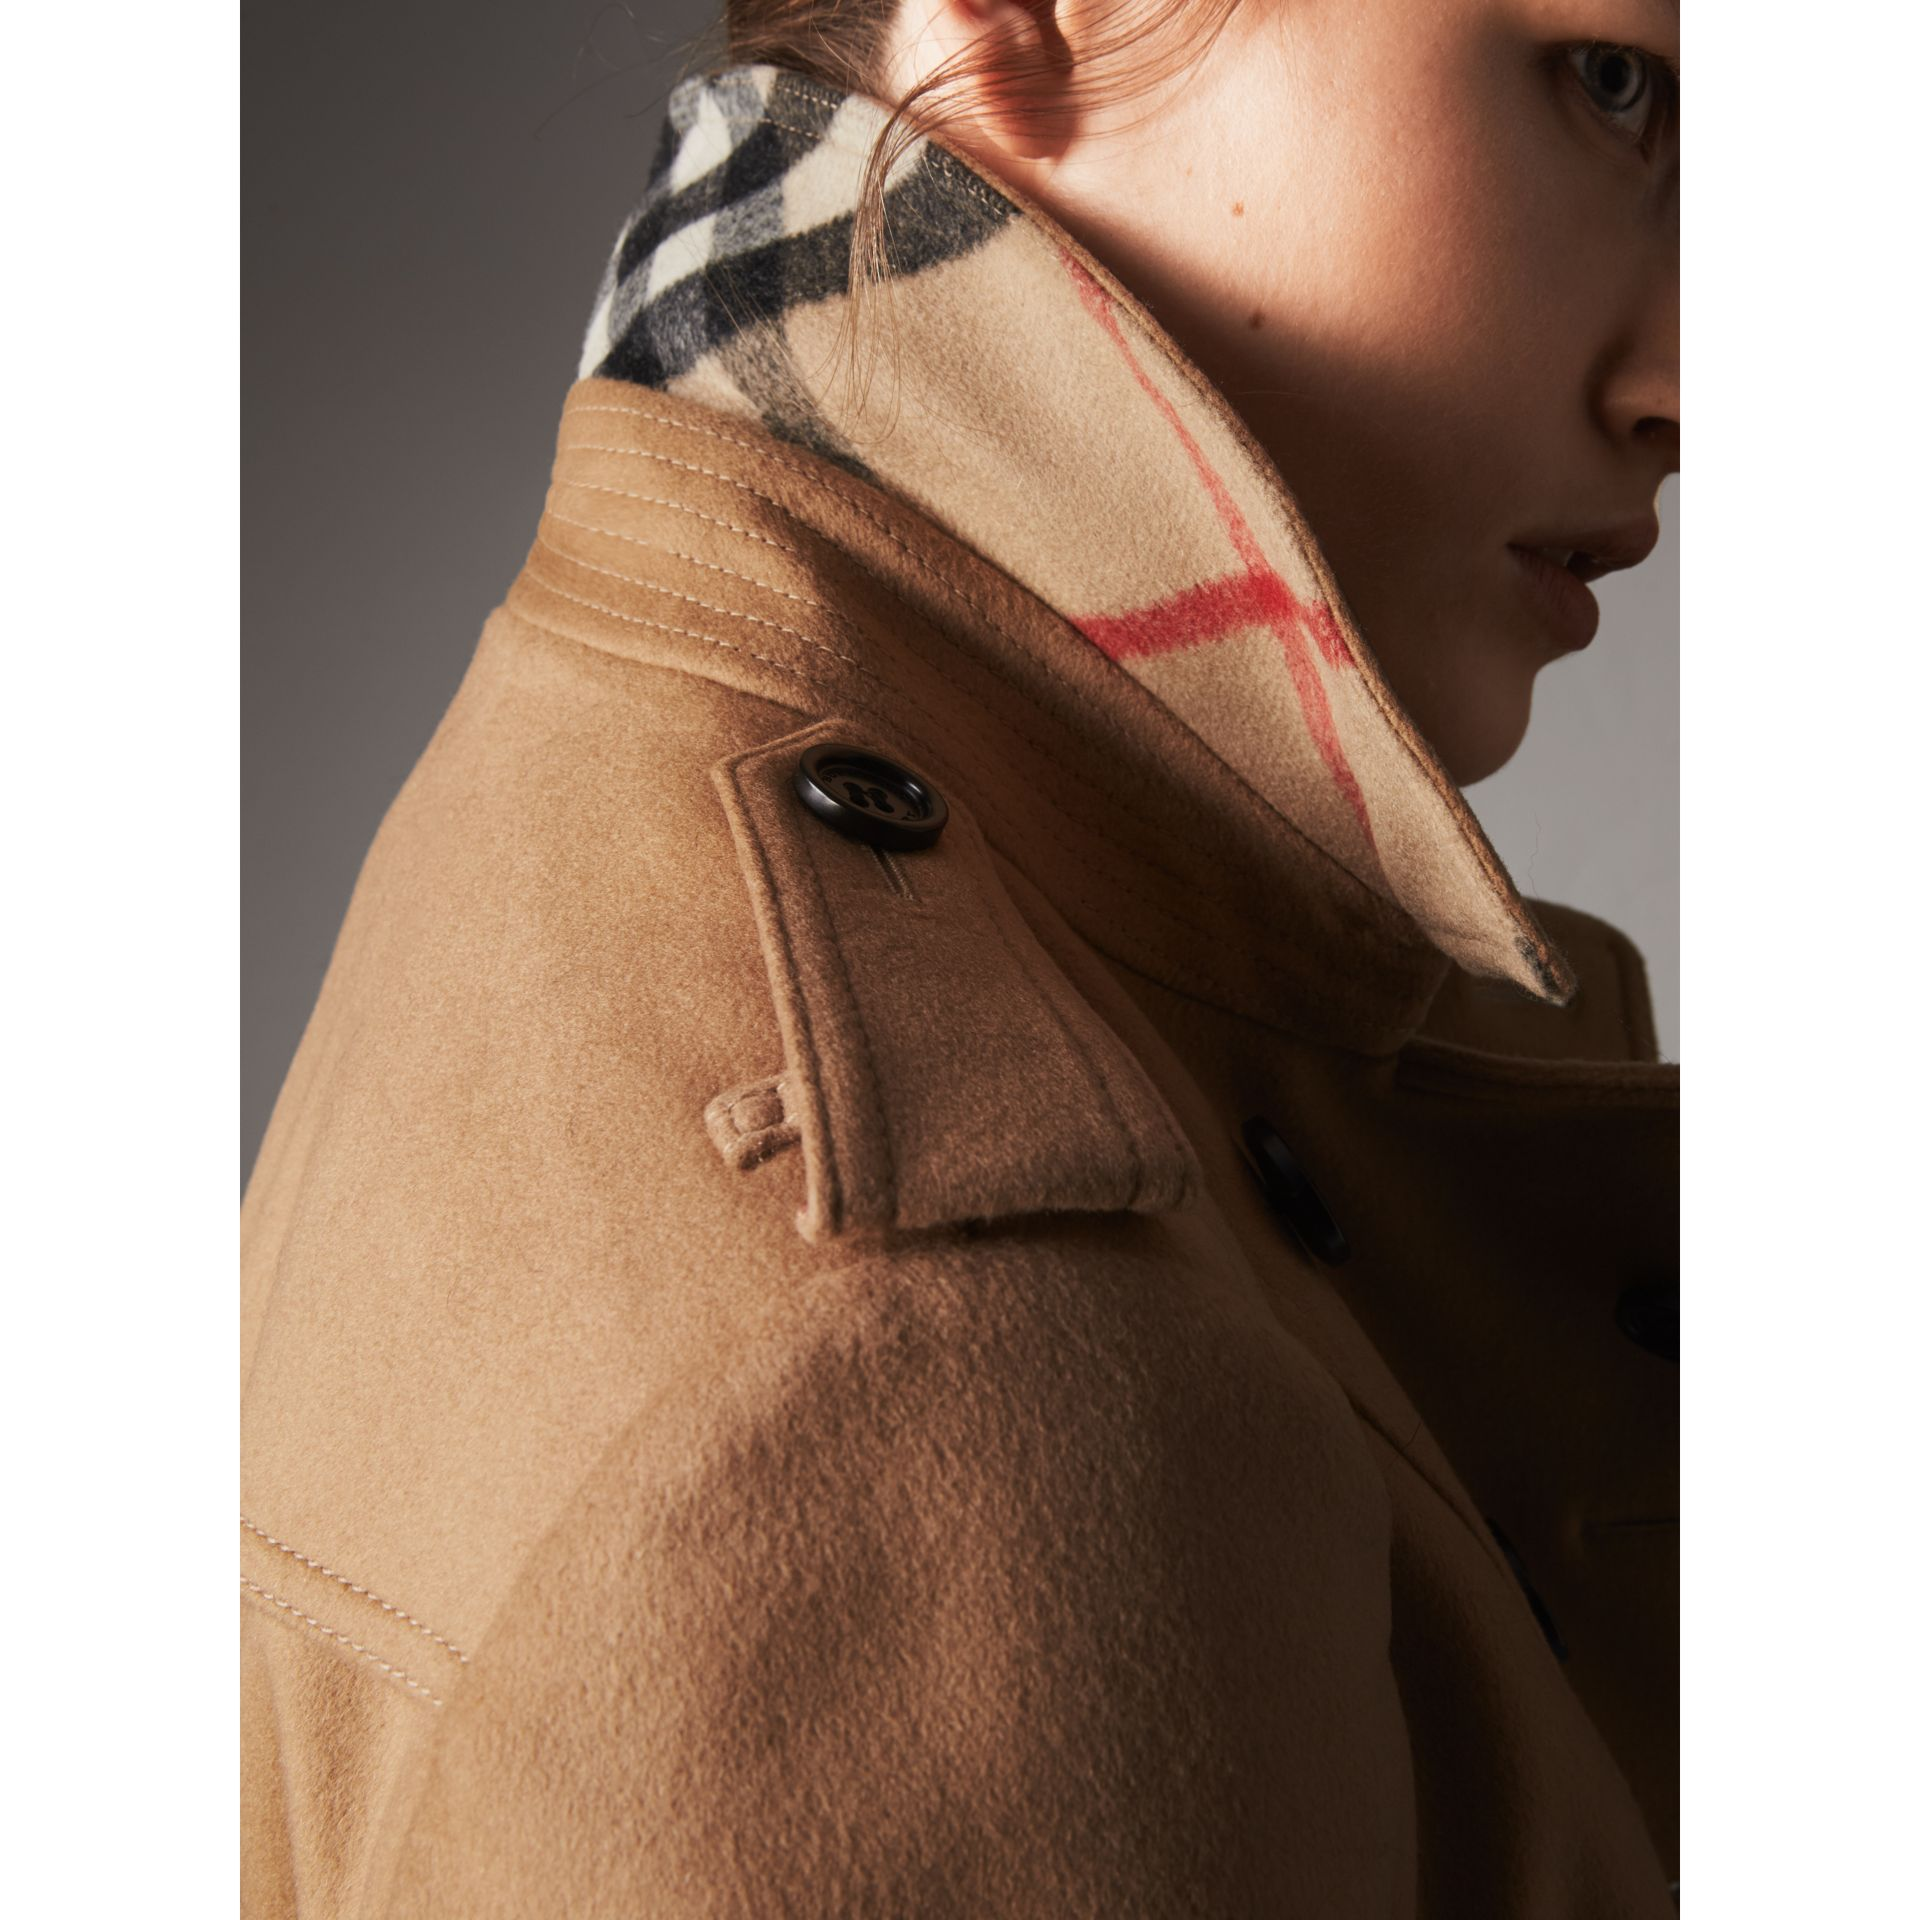 Wool Cashmere Trench Coat with Fur Collar in Camel - Women | Burberry - gallery image 5